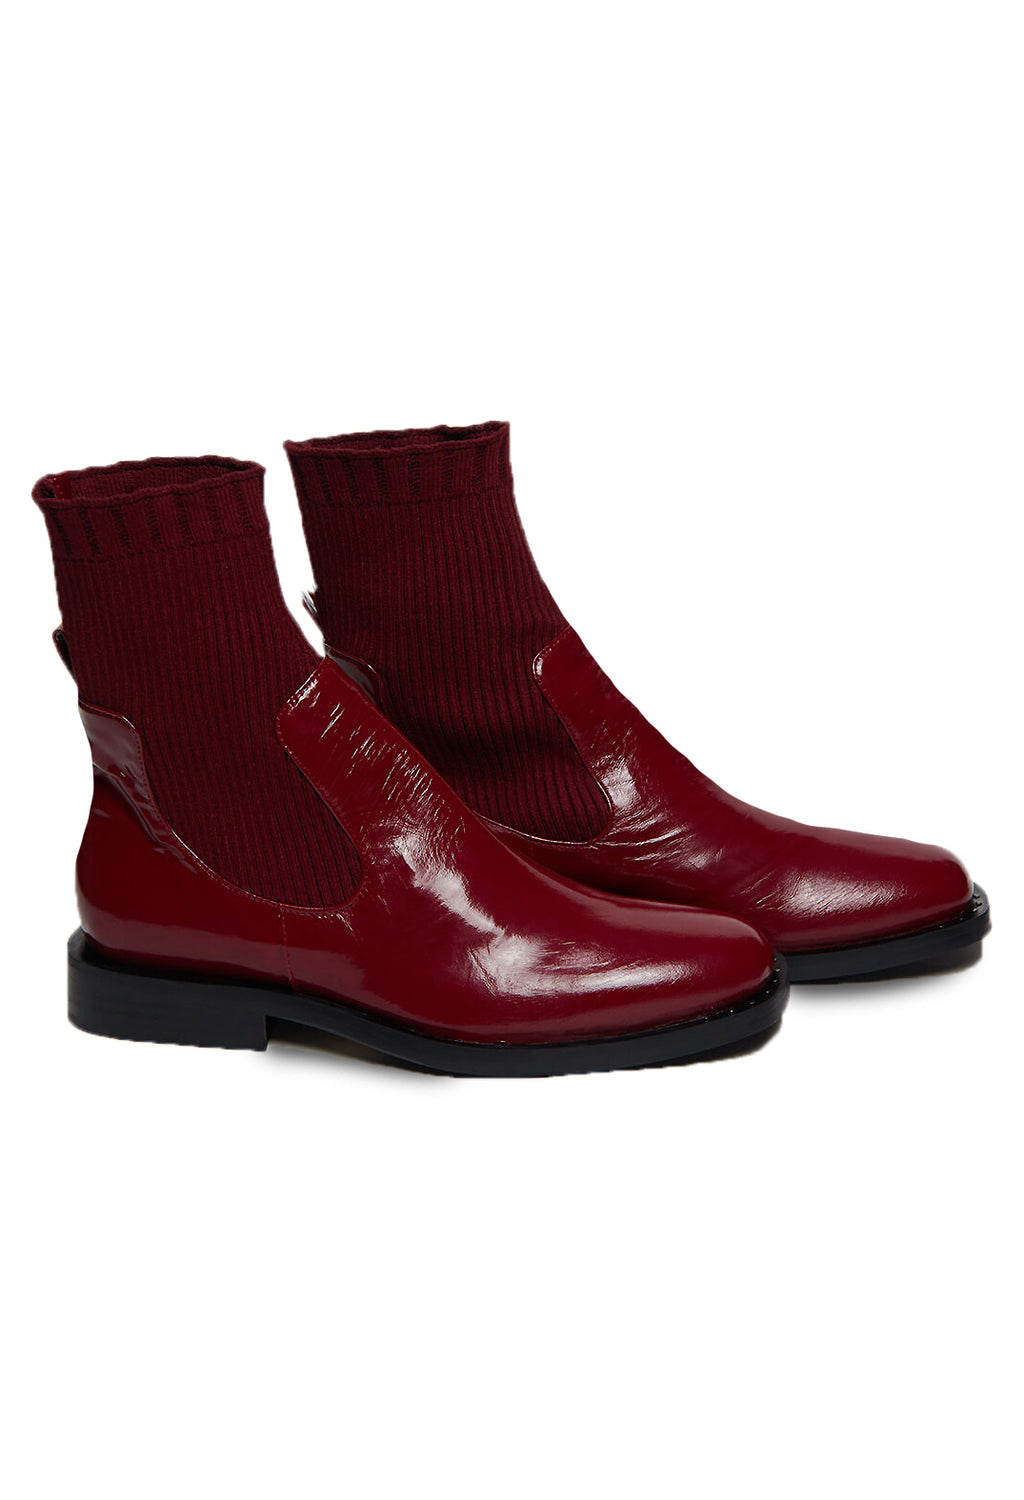 Sock Boots in Bordeaux